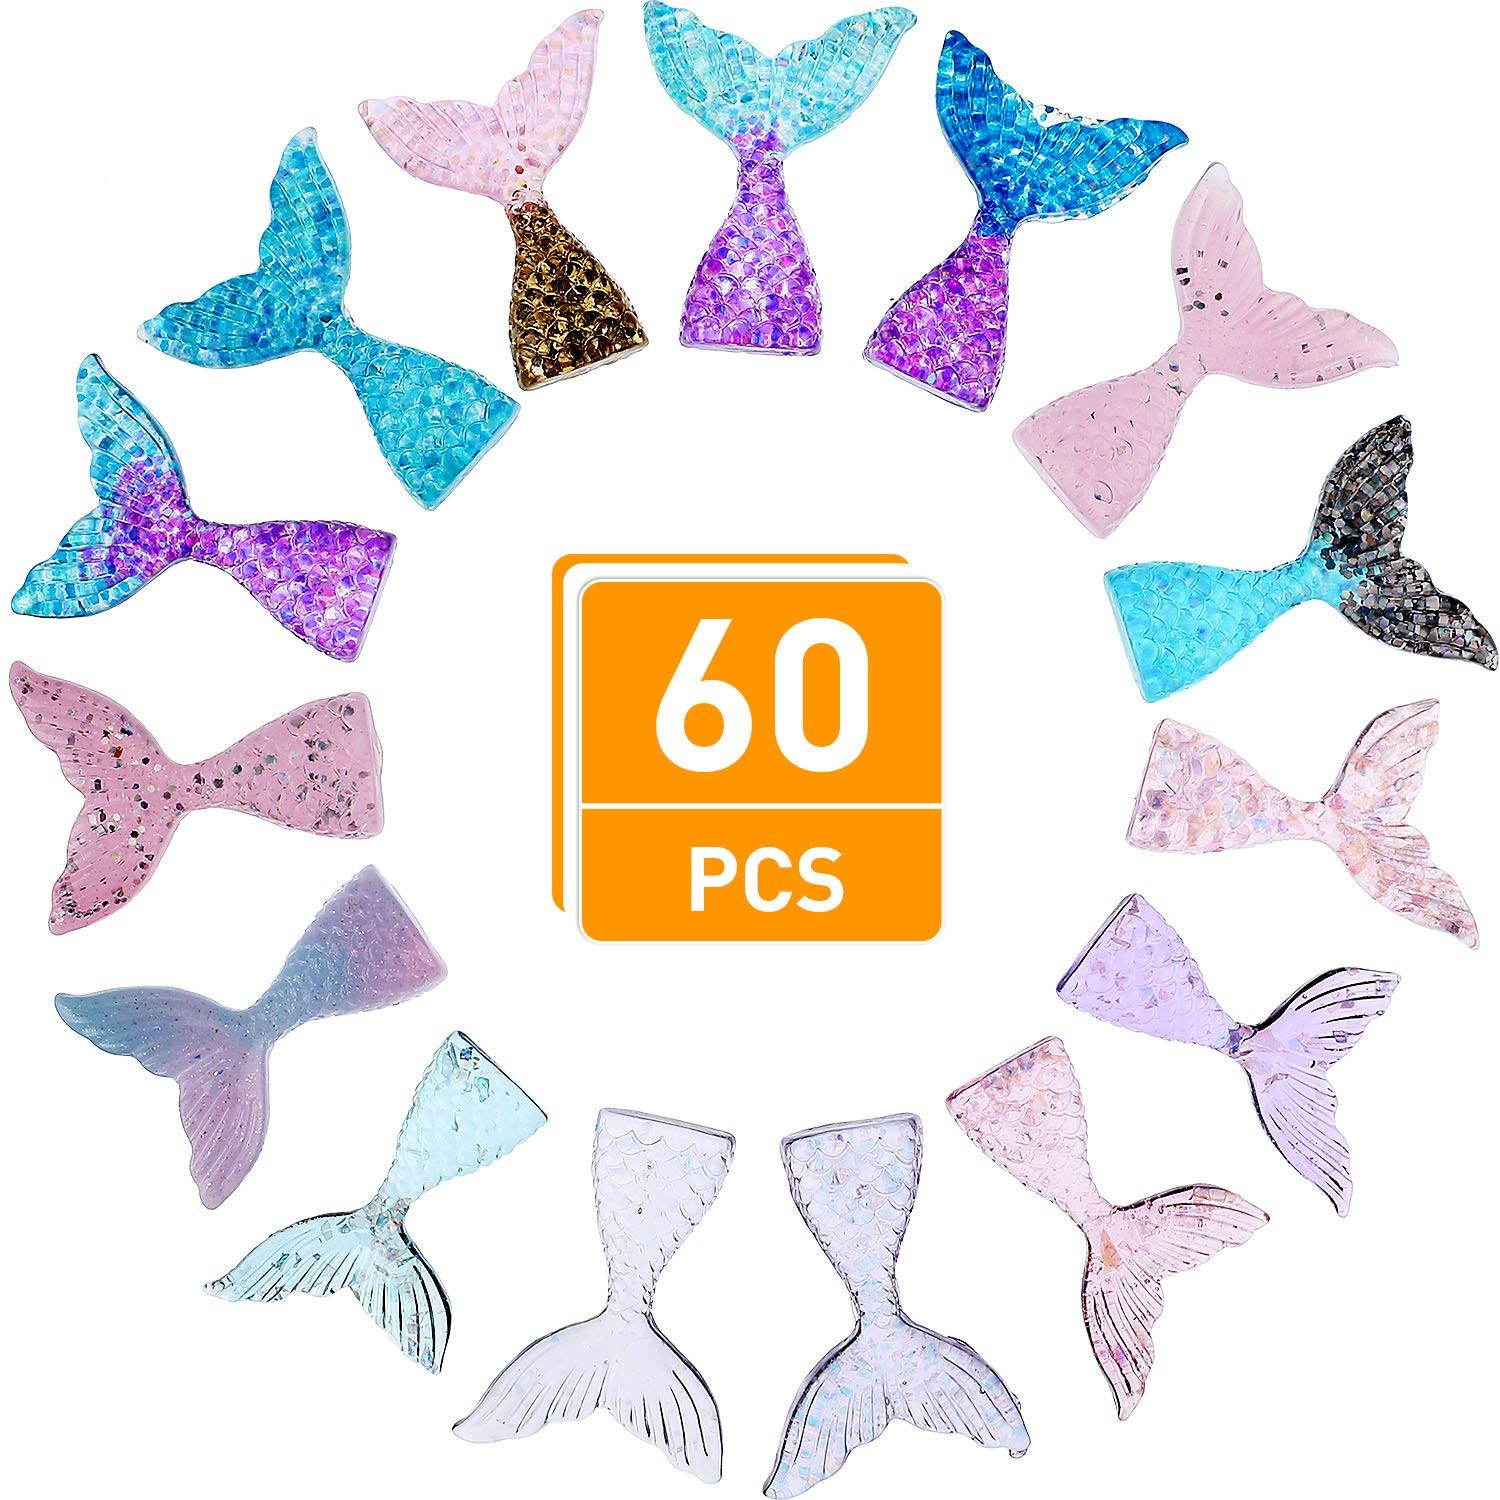 Blulu 60 Pieces Mermaid Tail Slime Charms Resin Flatback Glitter Slime Beads for Scrapbooking Jewelry Making DIY Crafts, 10 Colors